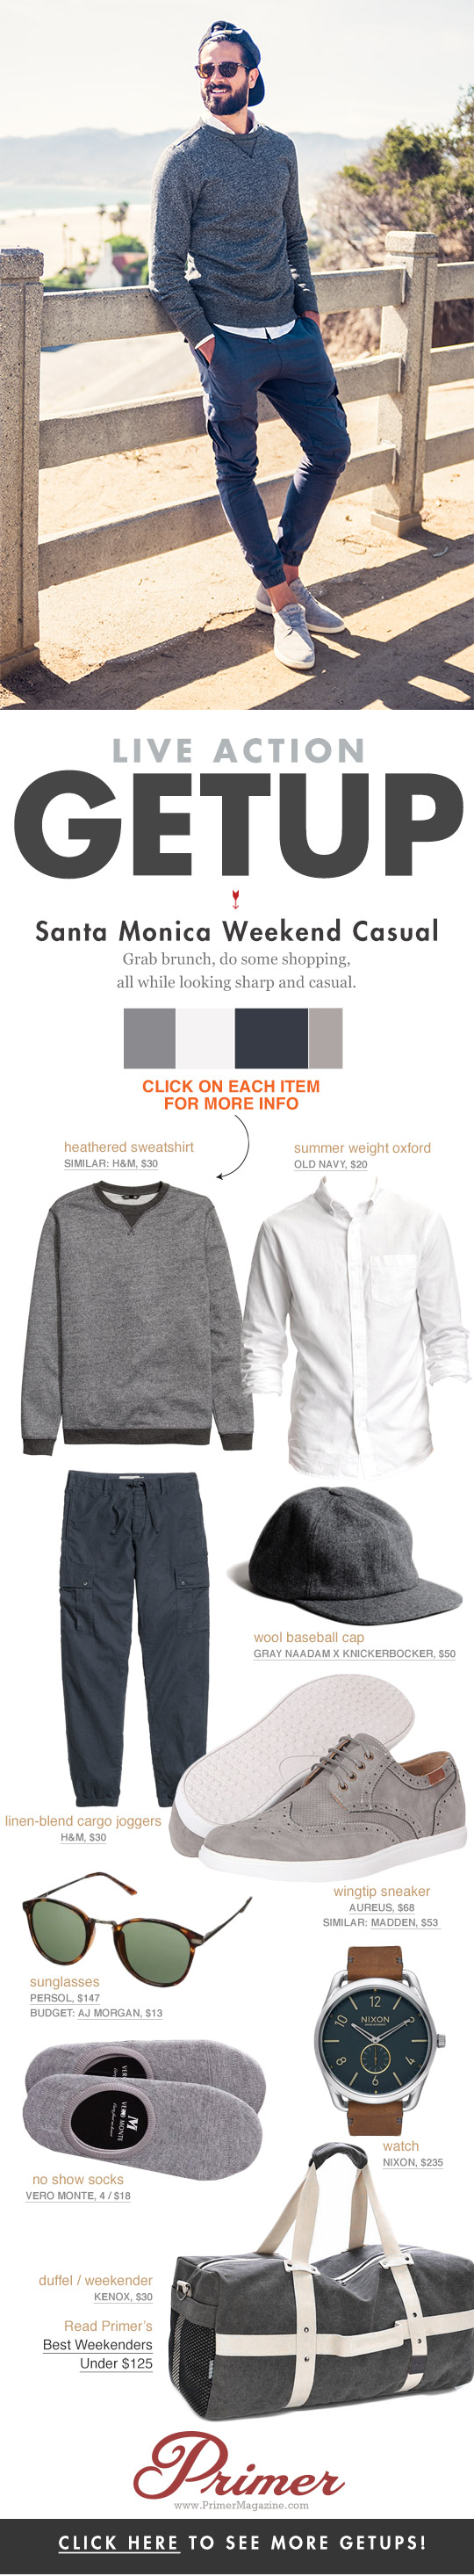 The Getup Santa Monica Weekend Casual - outfit inspiration featuring sweatshirt and chinos